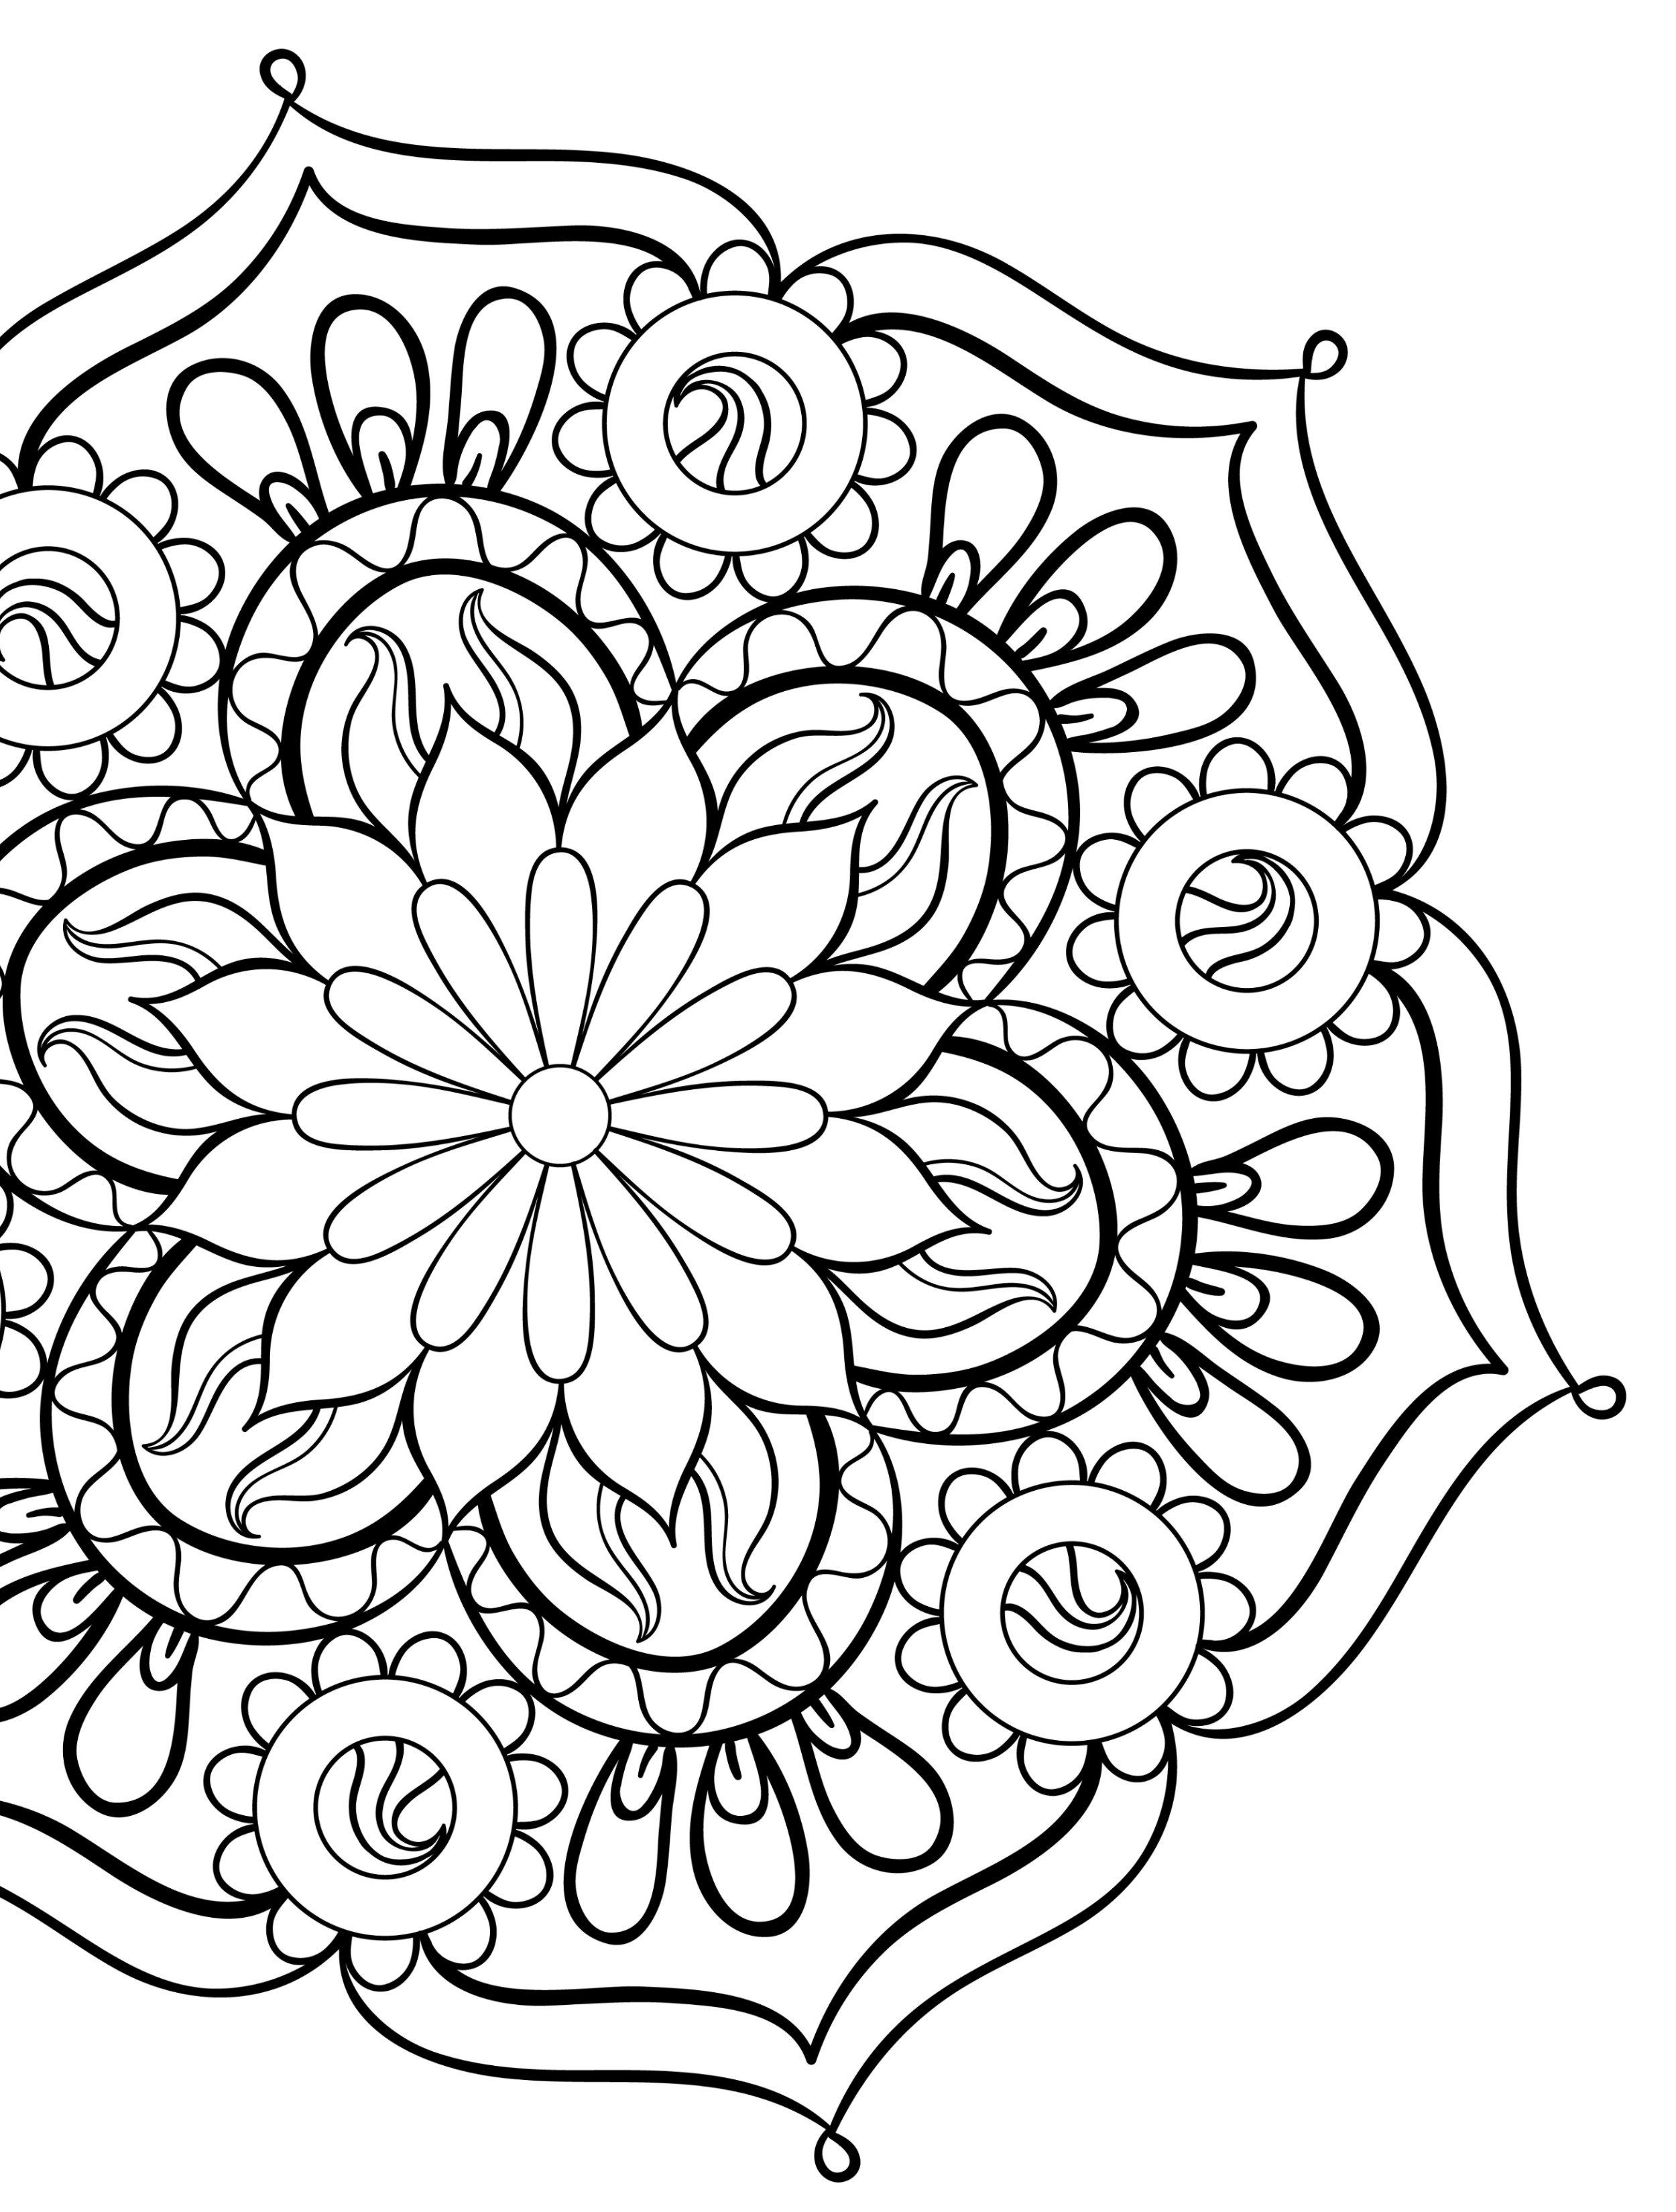 - 20 Gorgeous Free Printable Adult Coloring Pages Mandala Coloring Pages,  Free Adult Coloring Pages, Printable Adult Coloring Pages